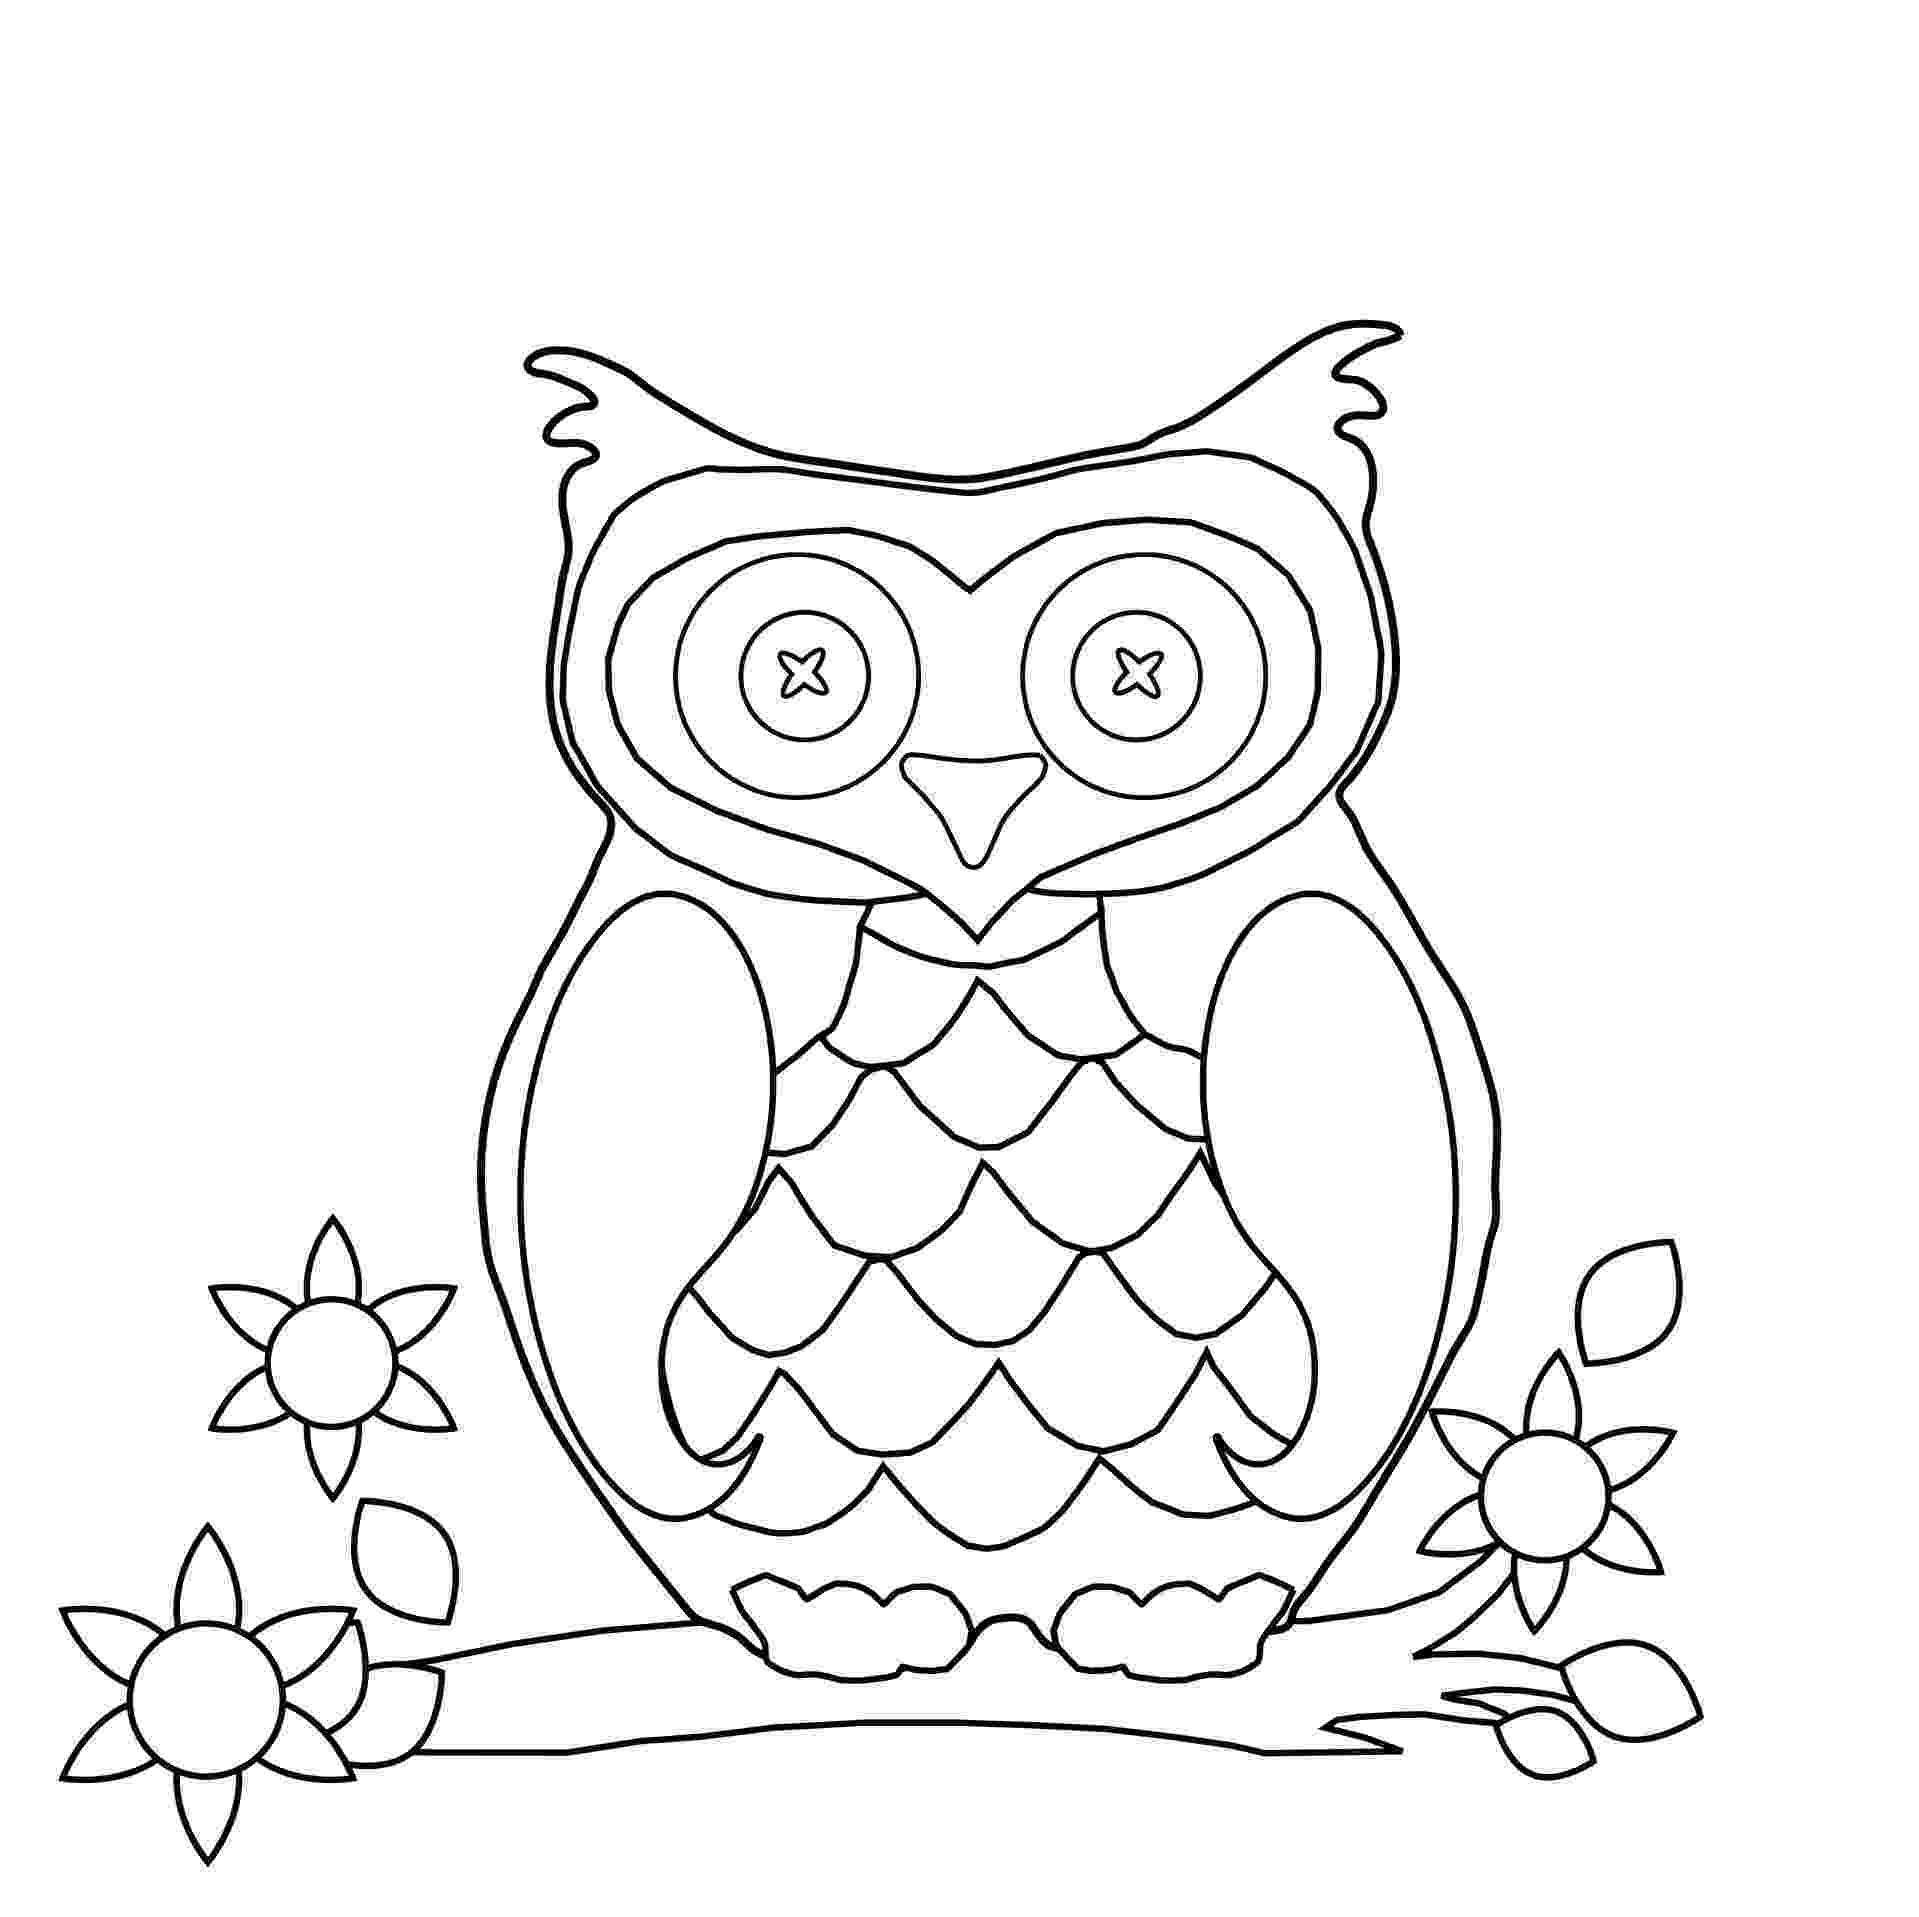 coloring pictures black and white pokemon black and white printable coloring pages gtgt disney pictures coloring black and white